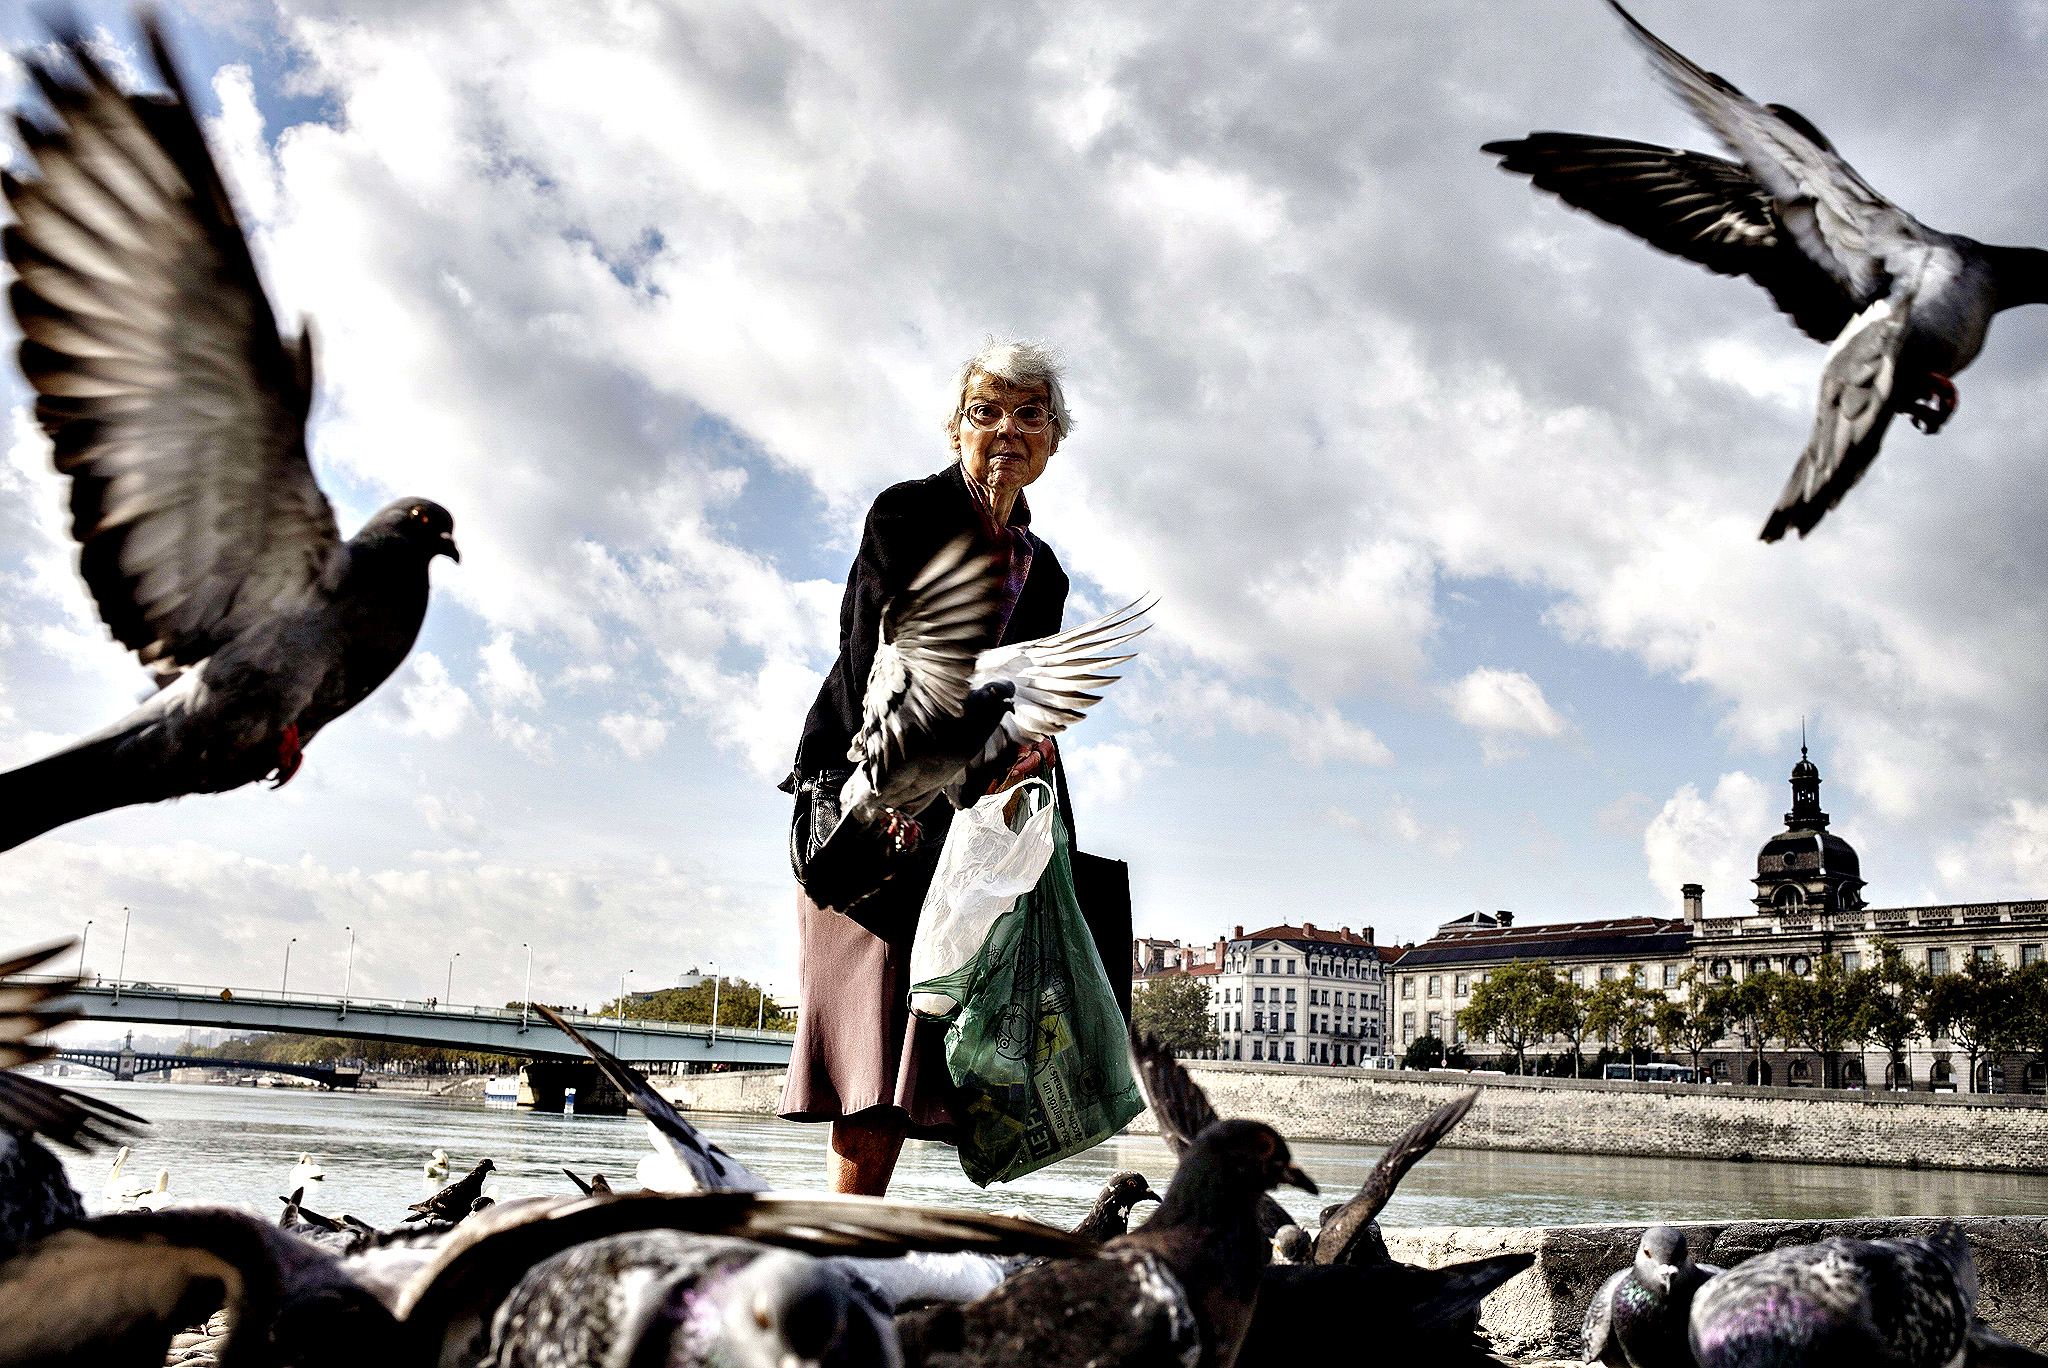 A woman feeds birds on the banks of the Rhone river in Lyon, central-eastern France, on October 23, 2014.